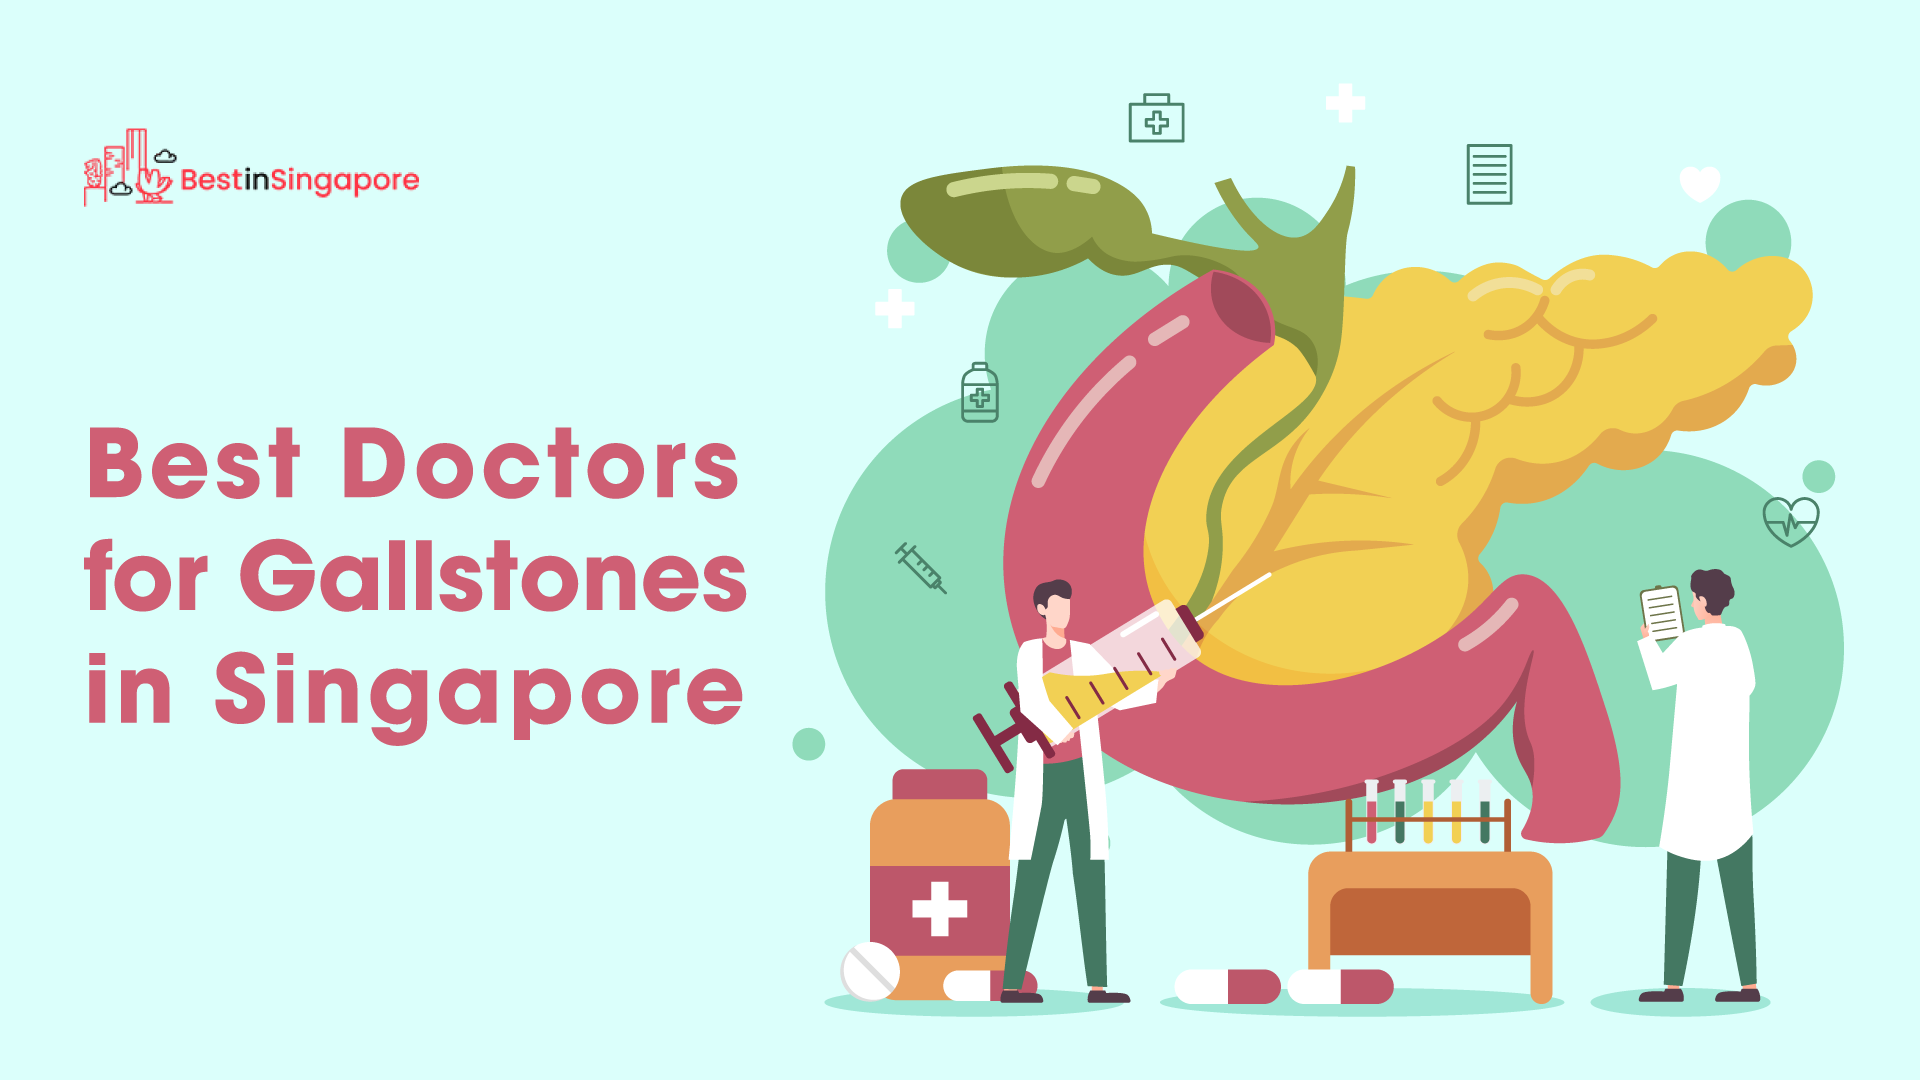 Best Doctors for Gallstones in Singapore